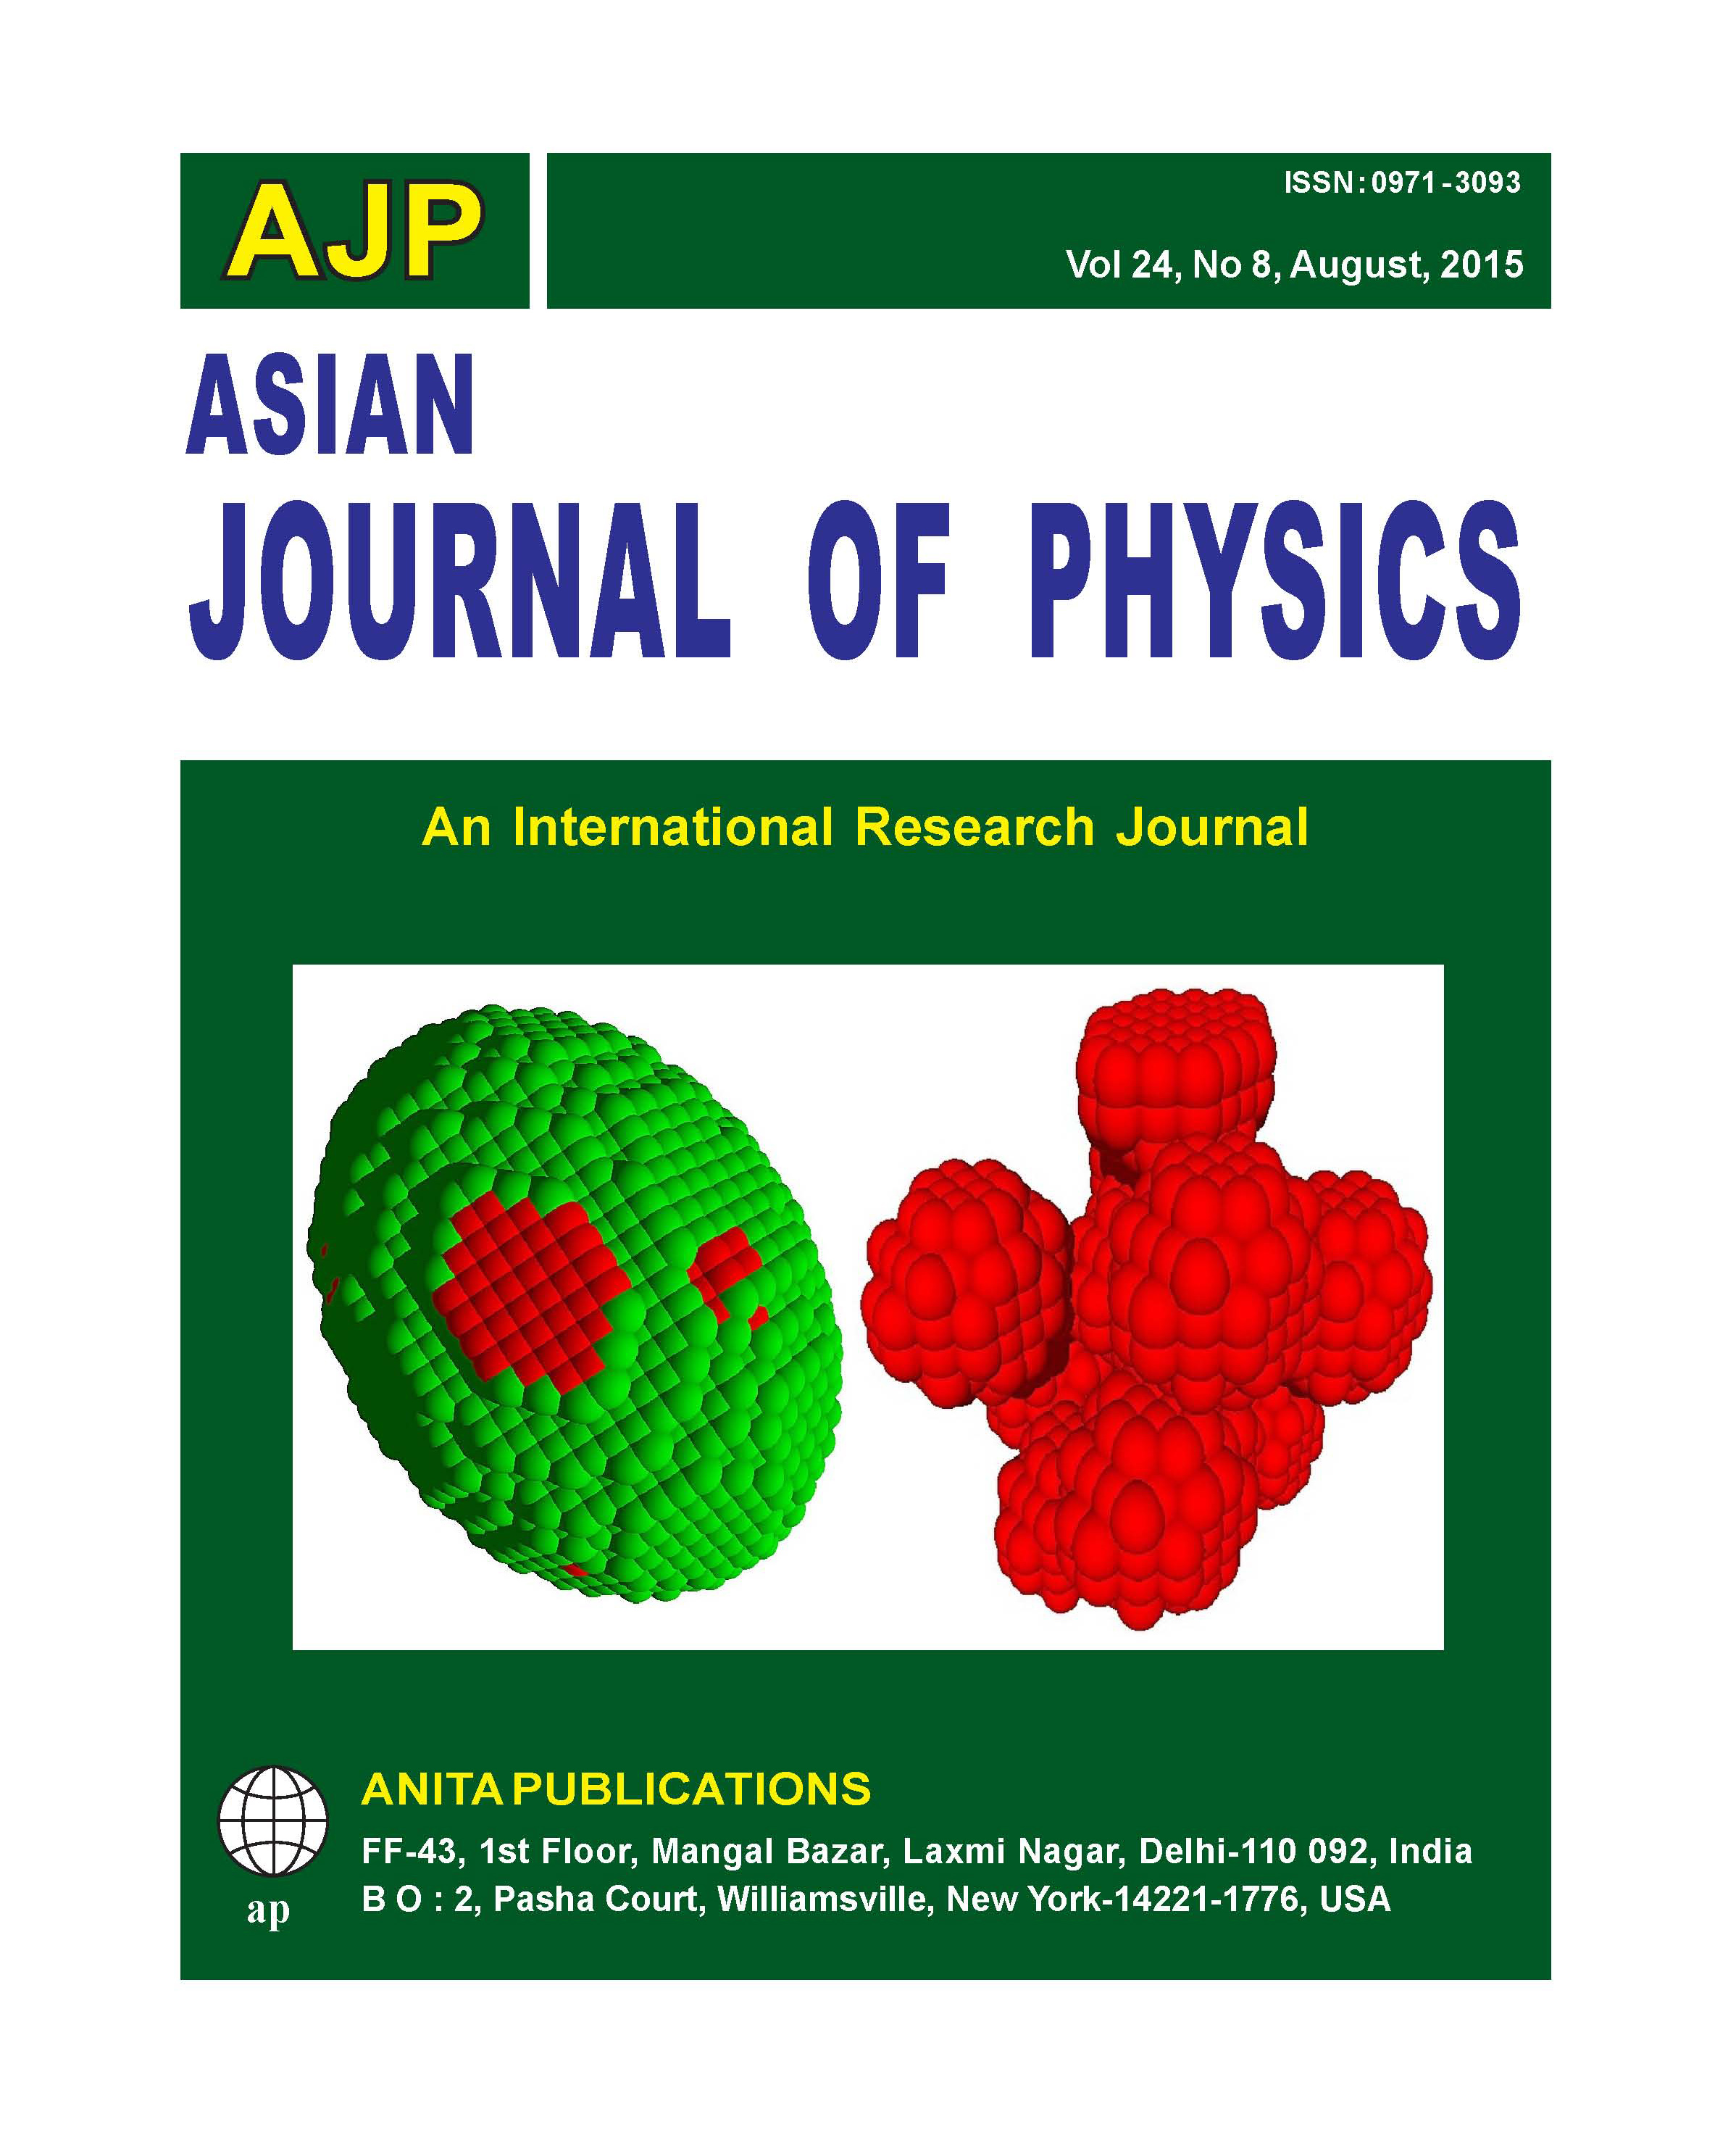 AJP Vol 24 No 8,2015